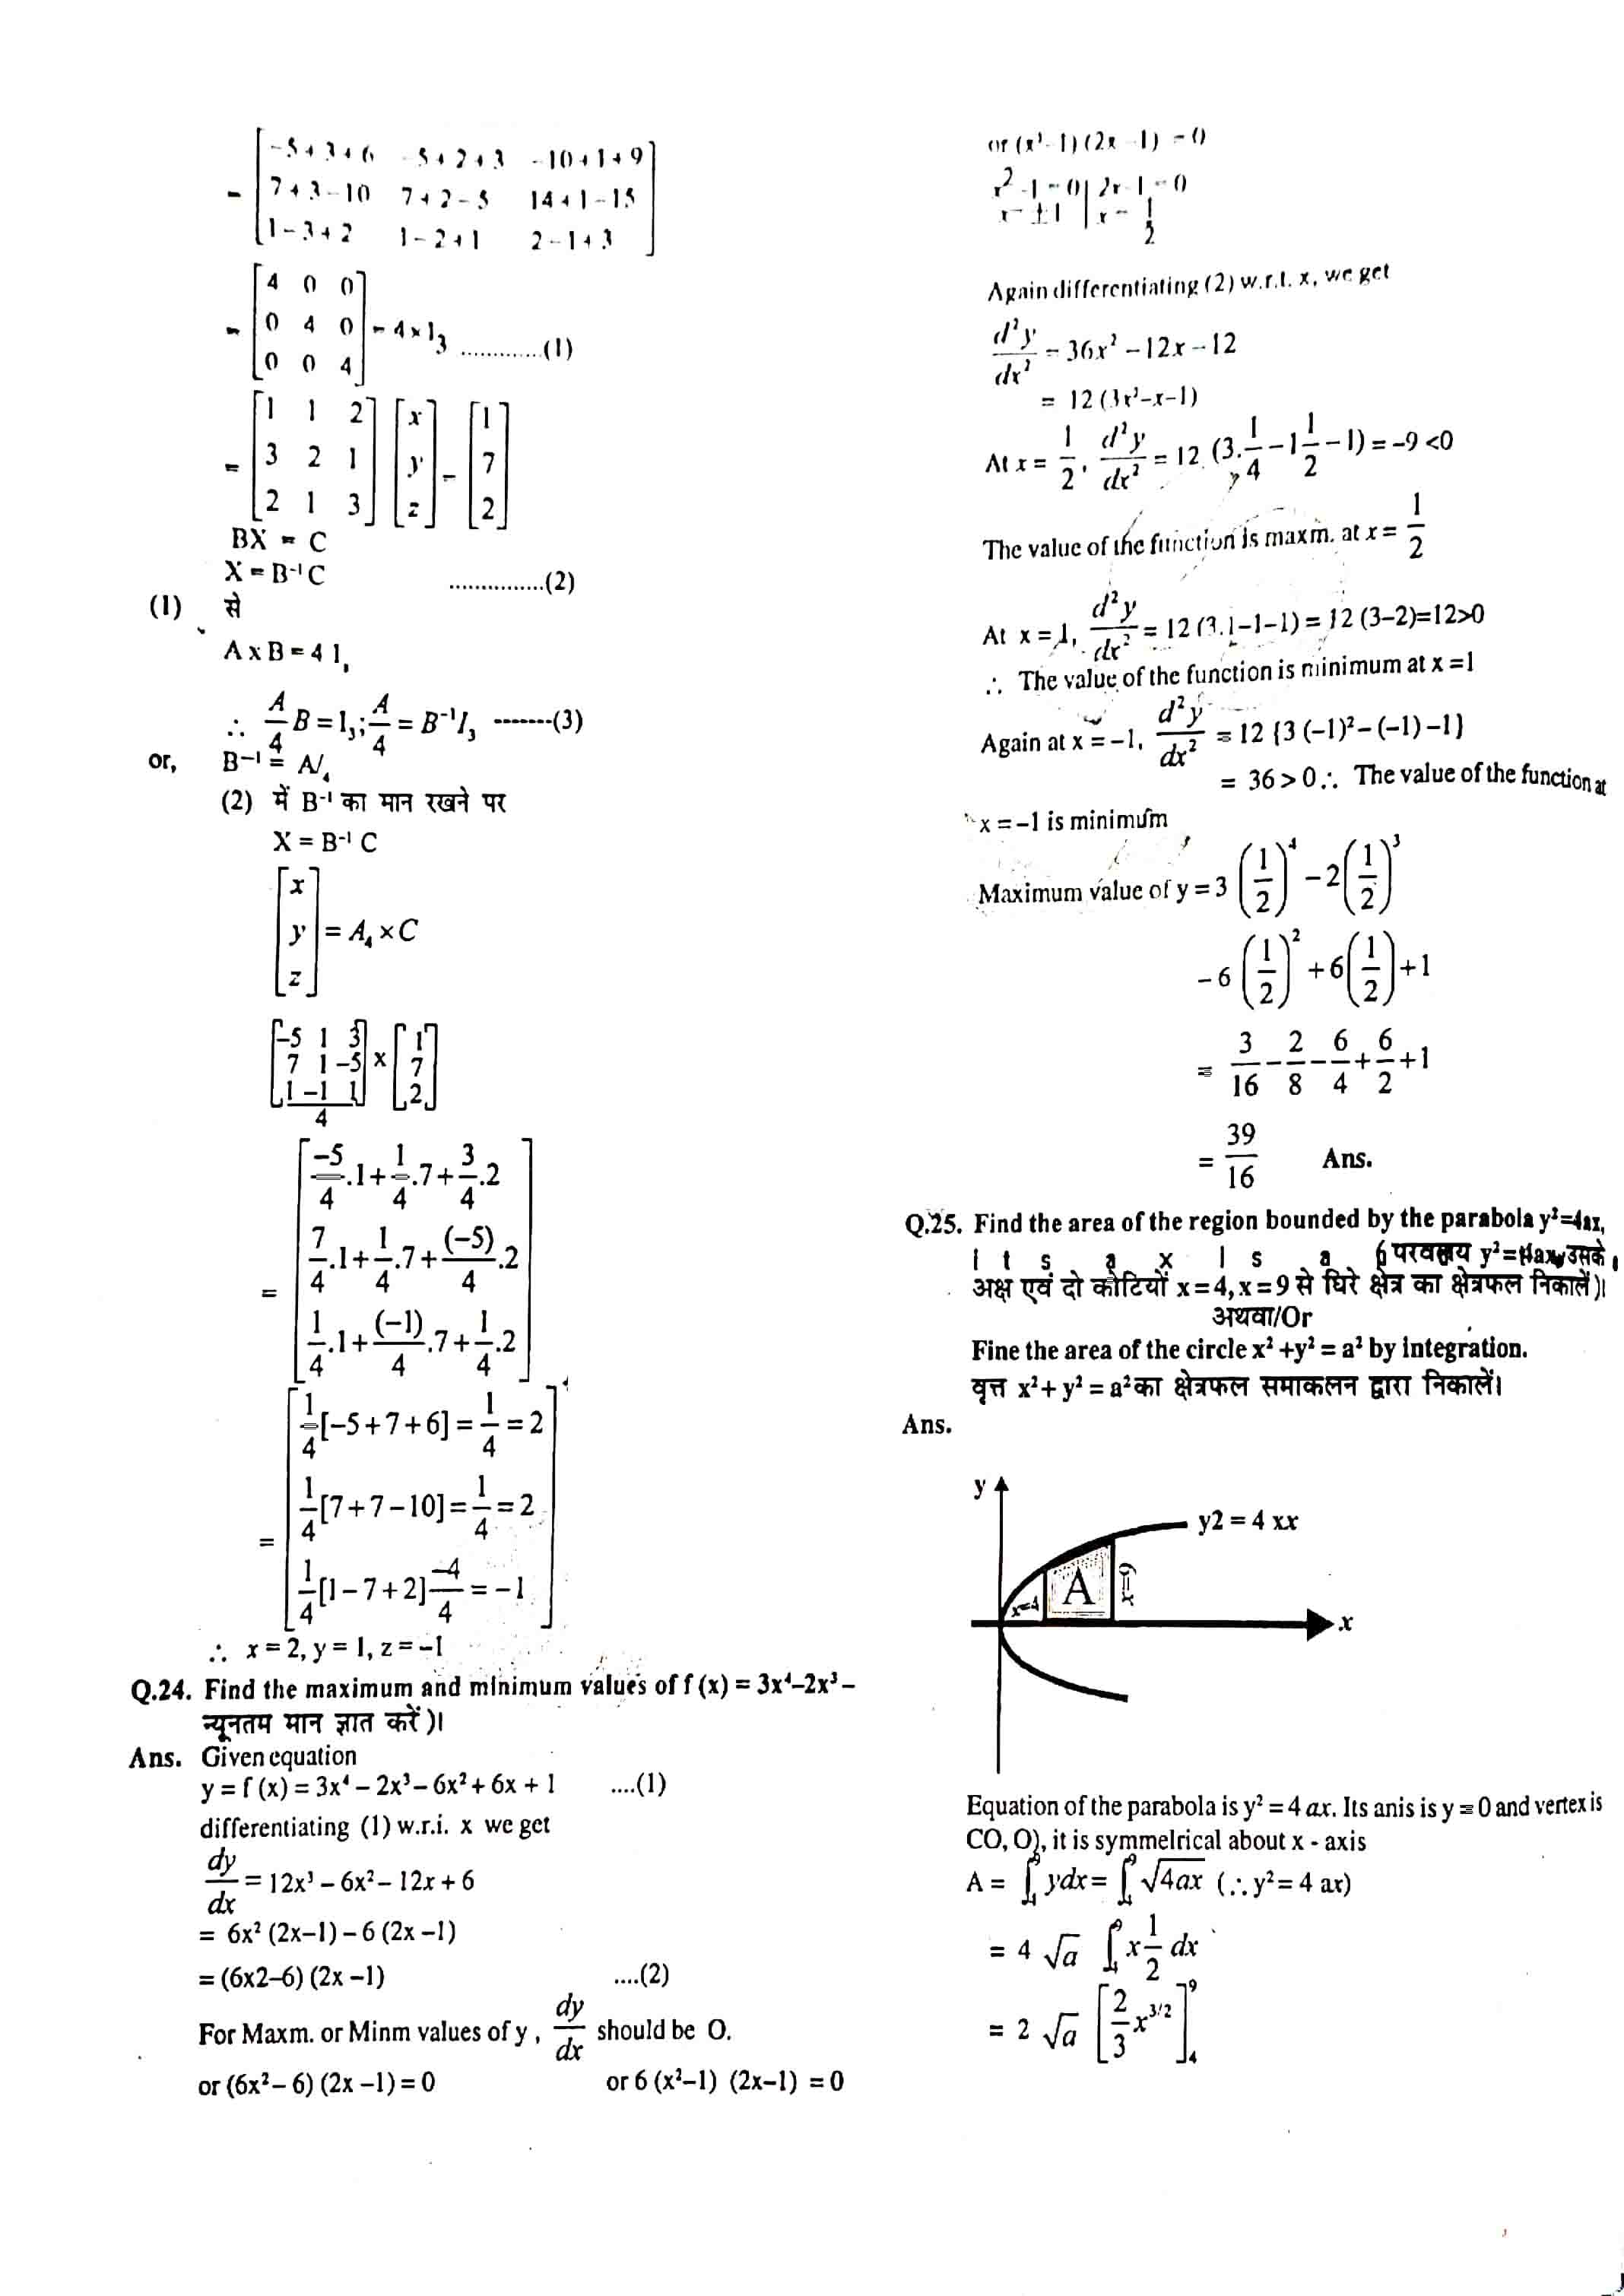 JAC Class 12 math 2012 Question Paper 07